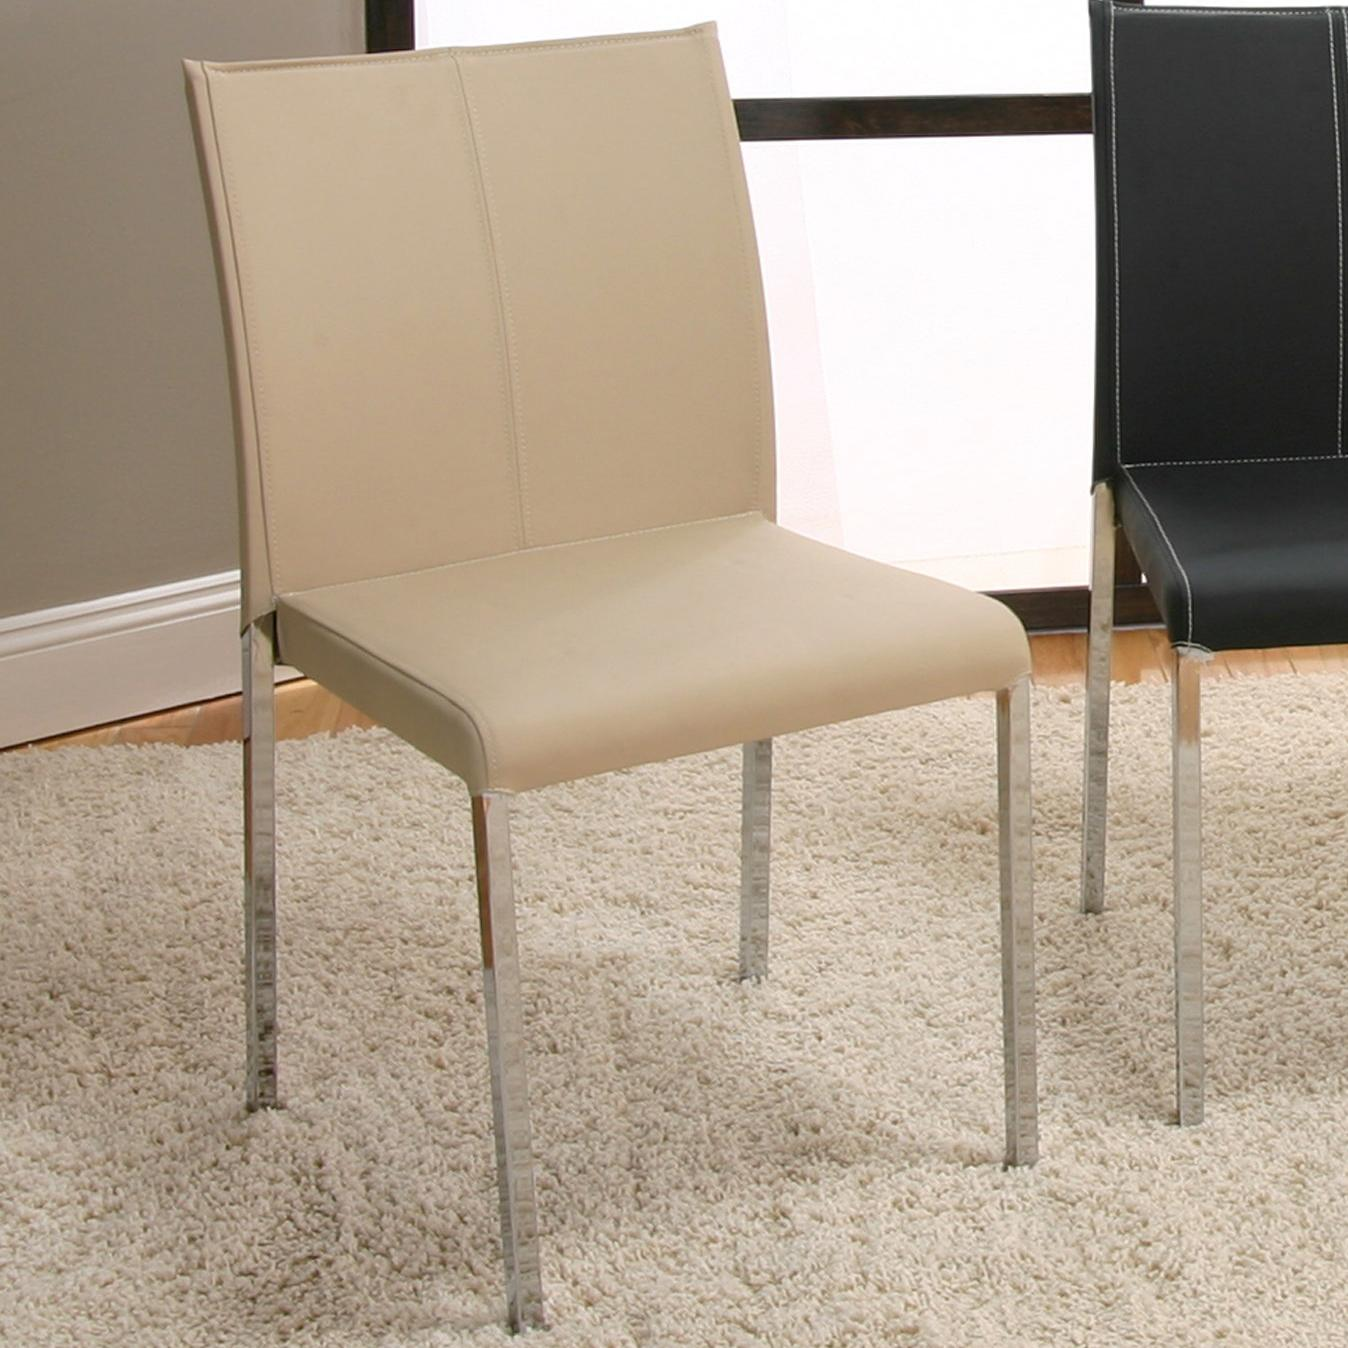 Cramco, Inc Contemporary Designs - Corona Chrome Stack Chair - Item Number: F5079-03